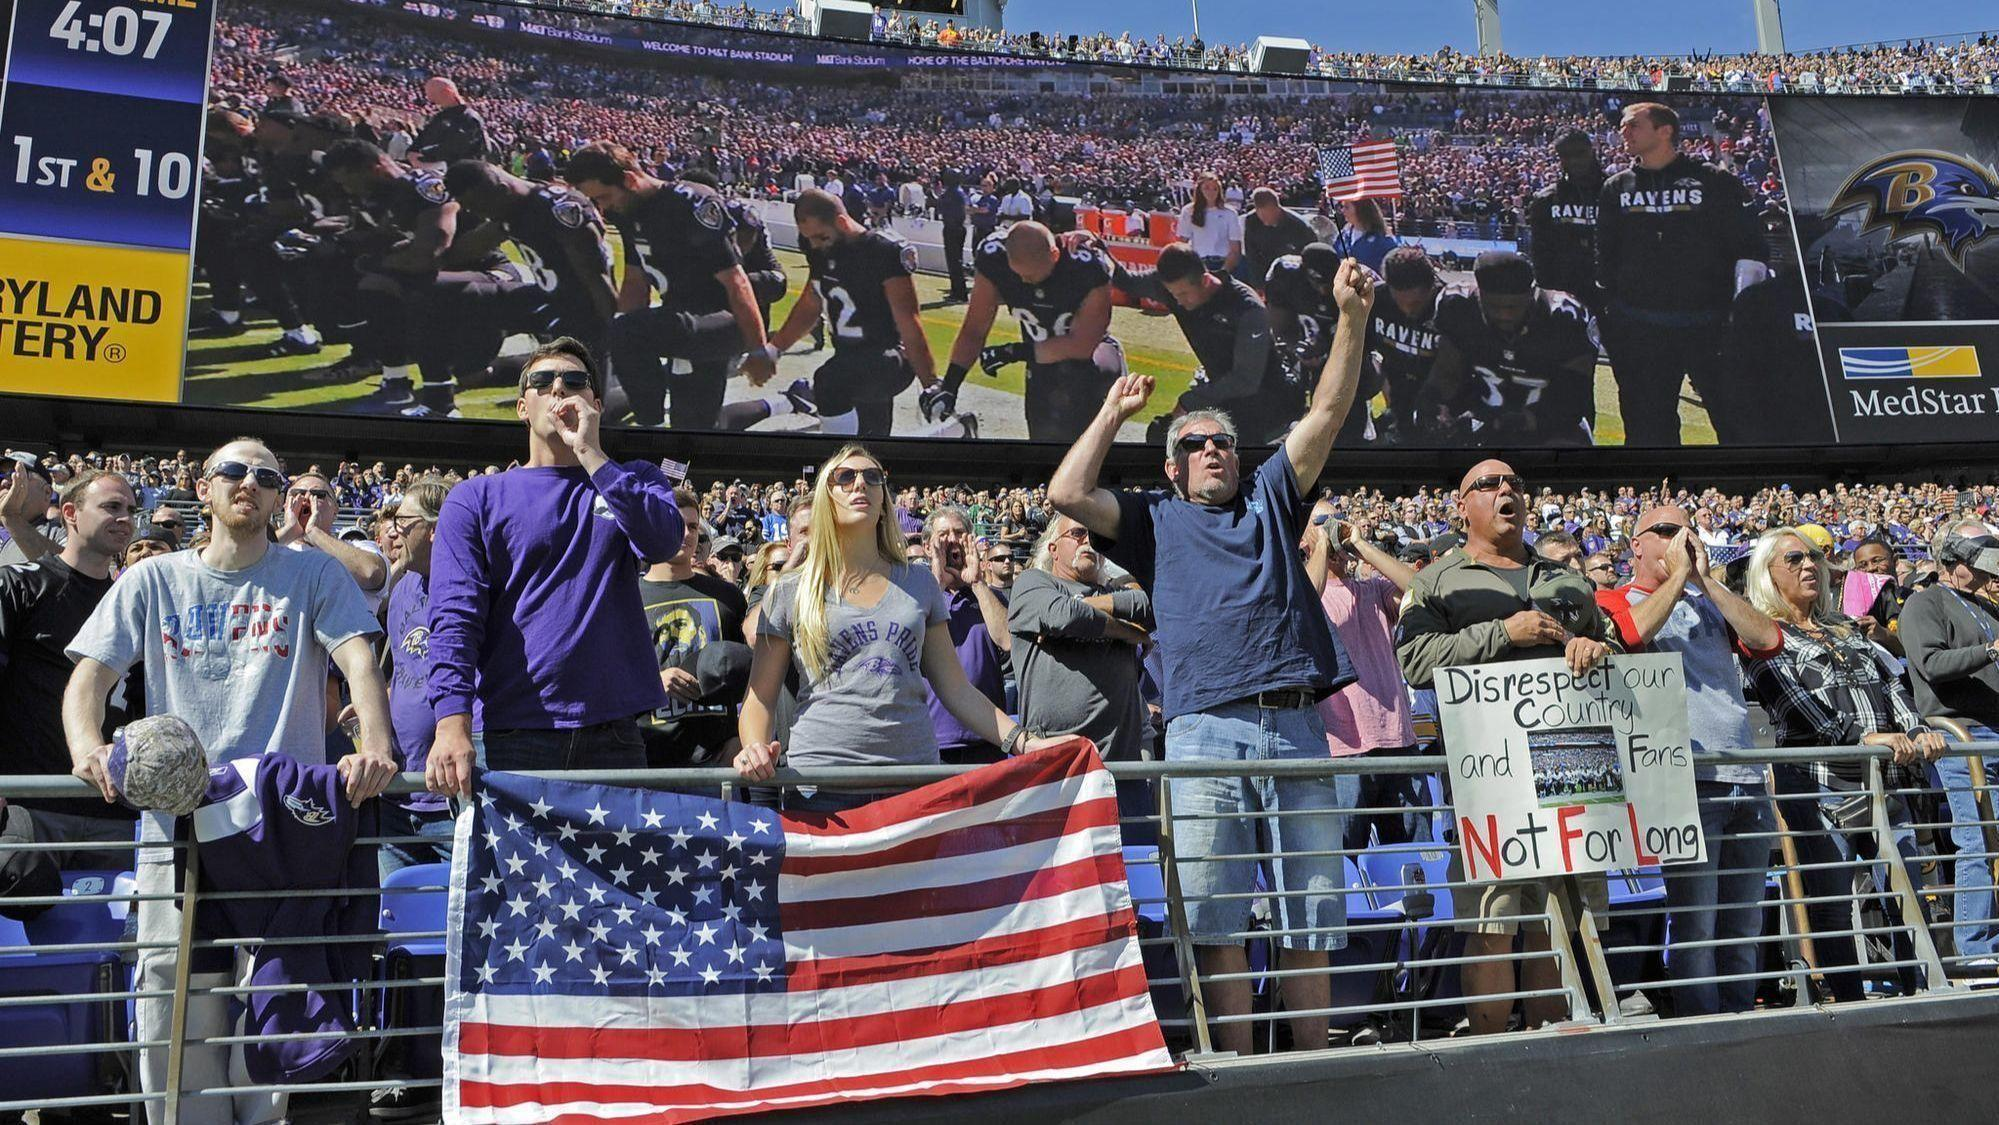 Defections From The Left And Right Nfl Fans Players Face Unsettled Times Baltimore Sun